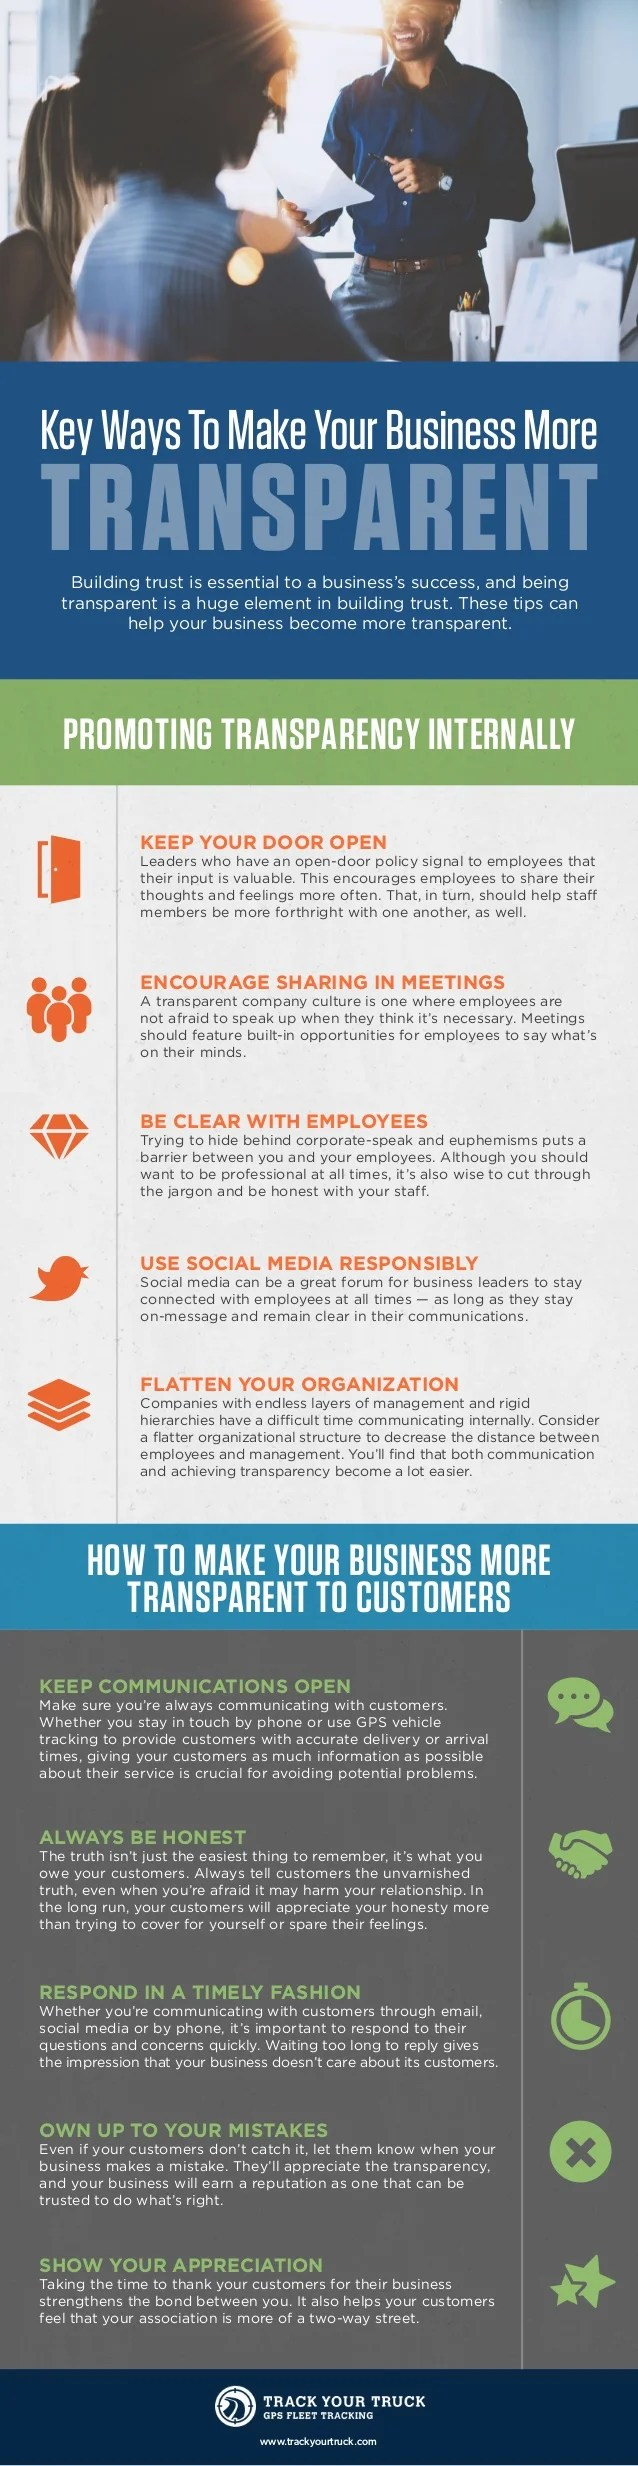 Key Ways to Make Your Business More Transparent